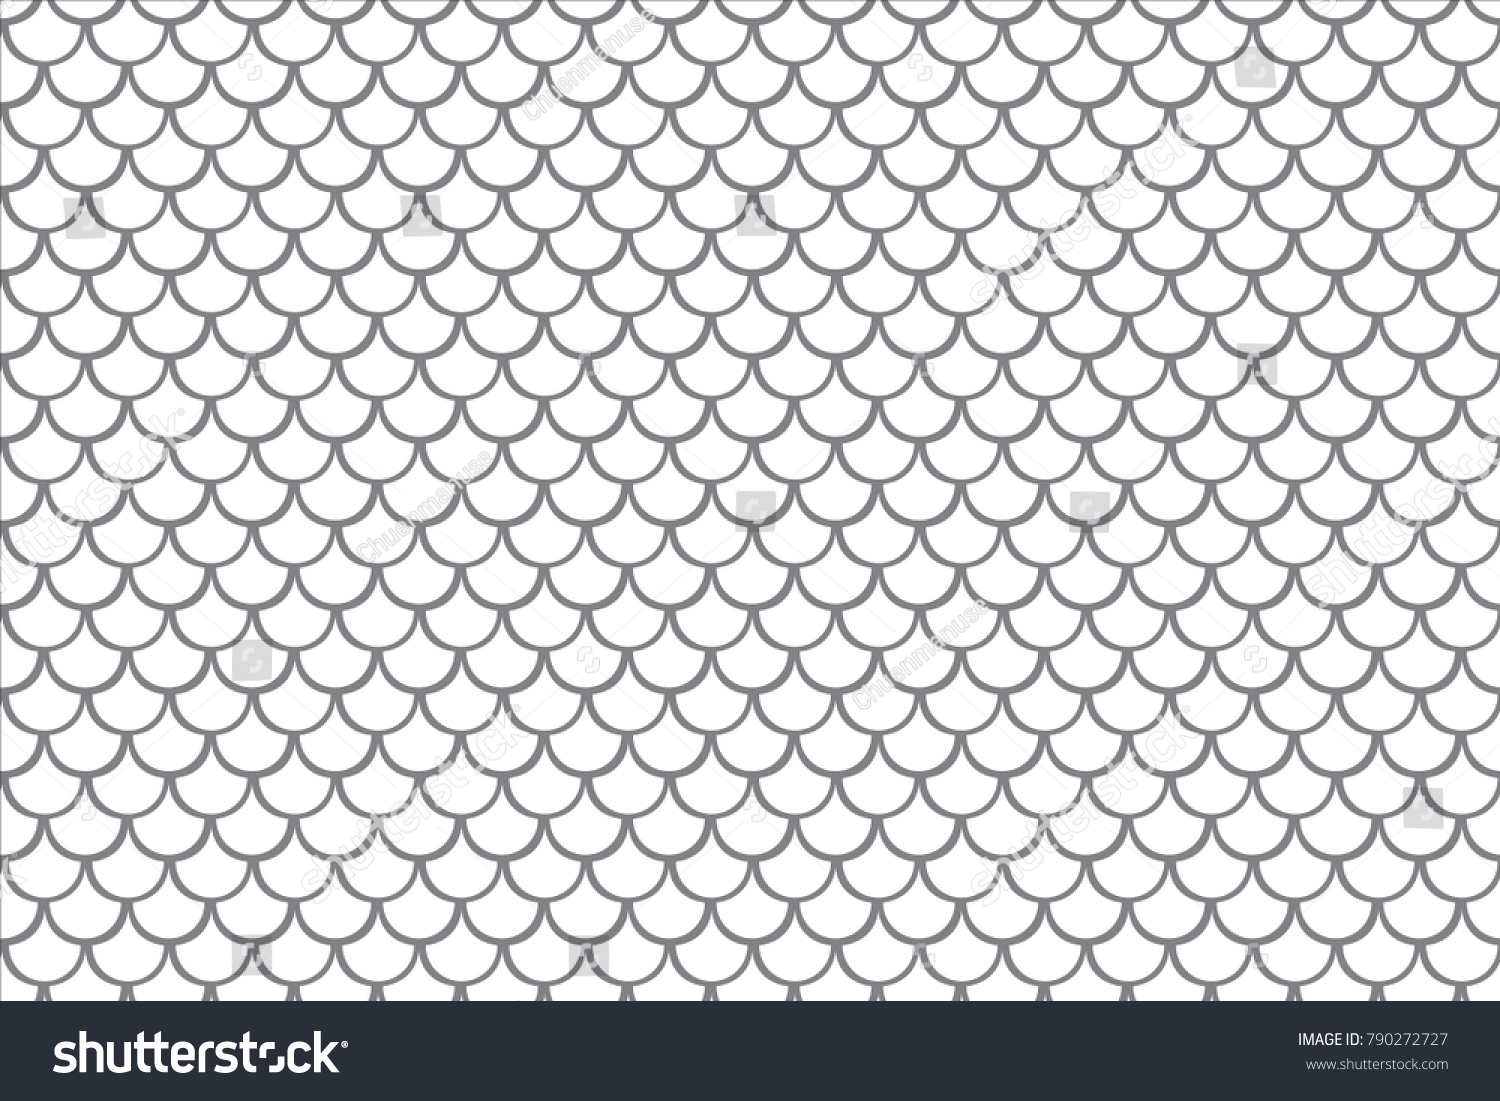 fish scale background dragon scales seamless stock vector 790272727